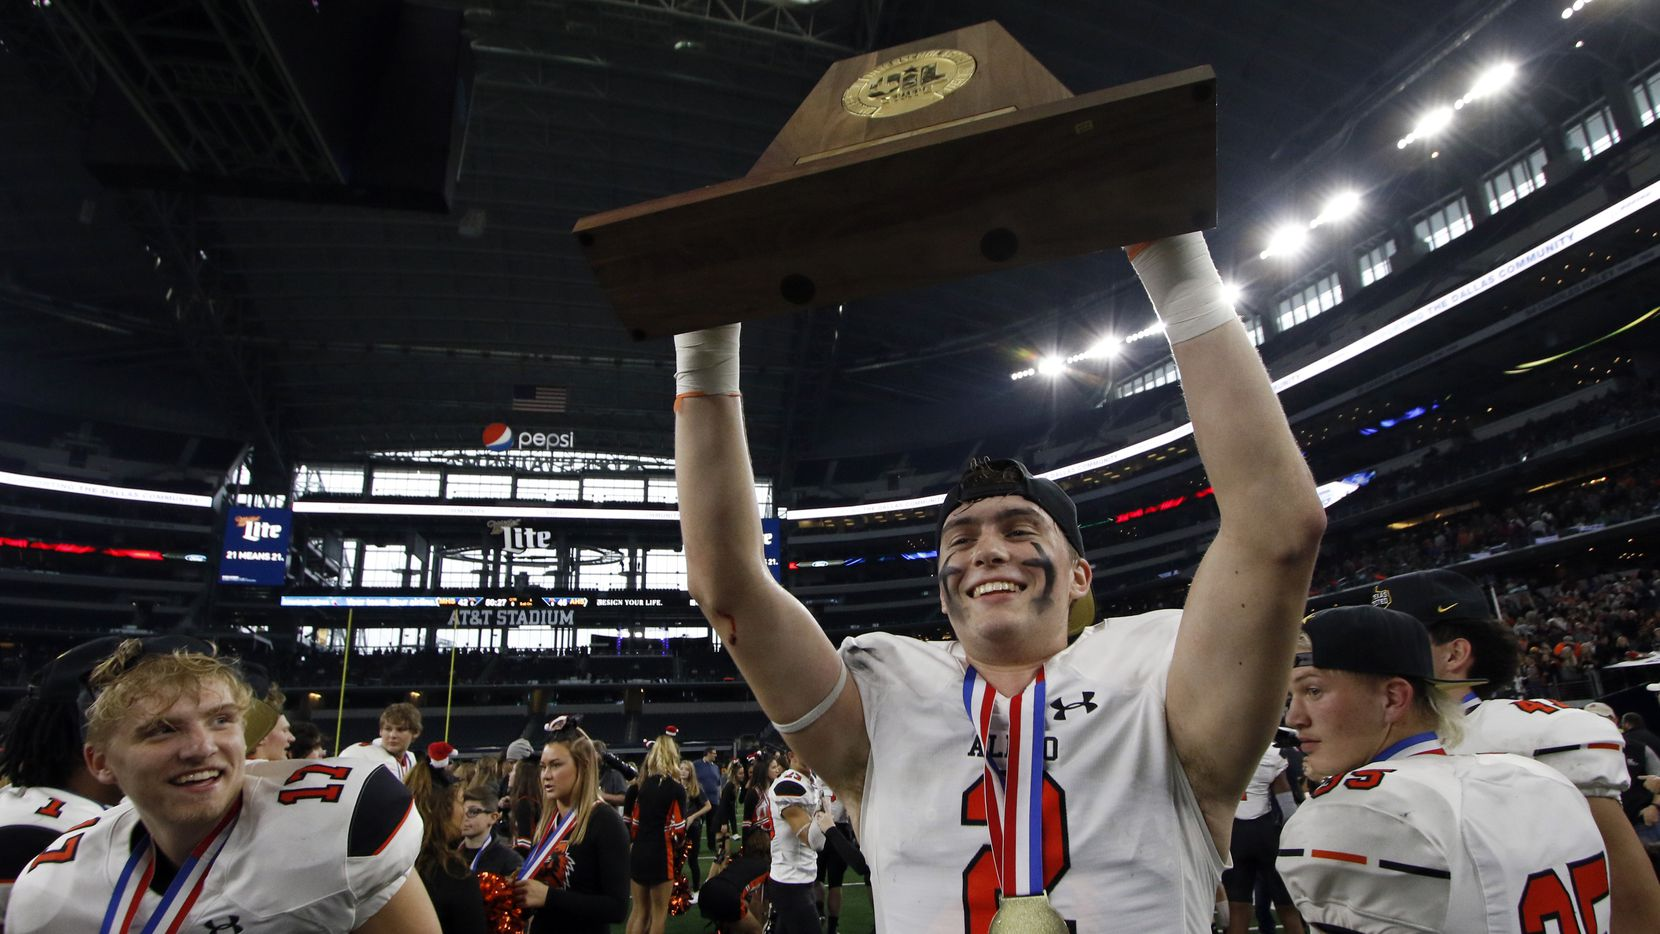 Flanked by Bearcats teammates Kevin Andridge (17) and Sam Forman (35), receiver Jaedon Pellegrino (2) lifts the state trophy following the Bearcat's 45-42 victory over Fort Bend Marshall. The two teams played their Class 5A Division ll state championship football game at AT&T Stadium  in Arlington on December 21, 2019. (Steve Hamm/ Special Contributor)